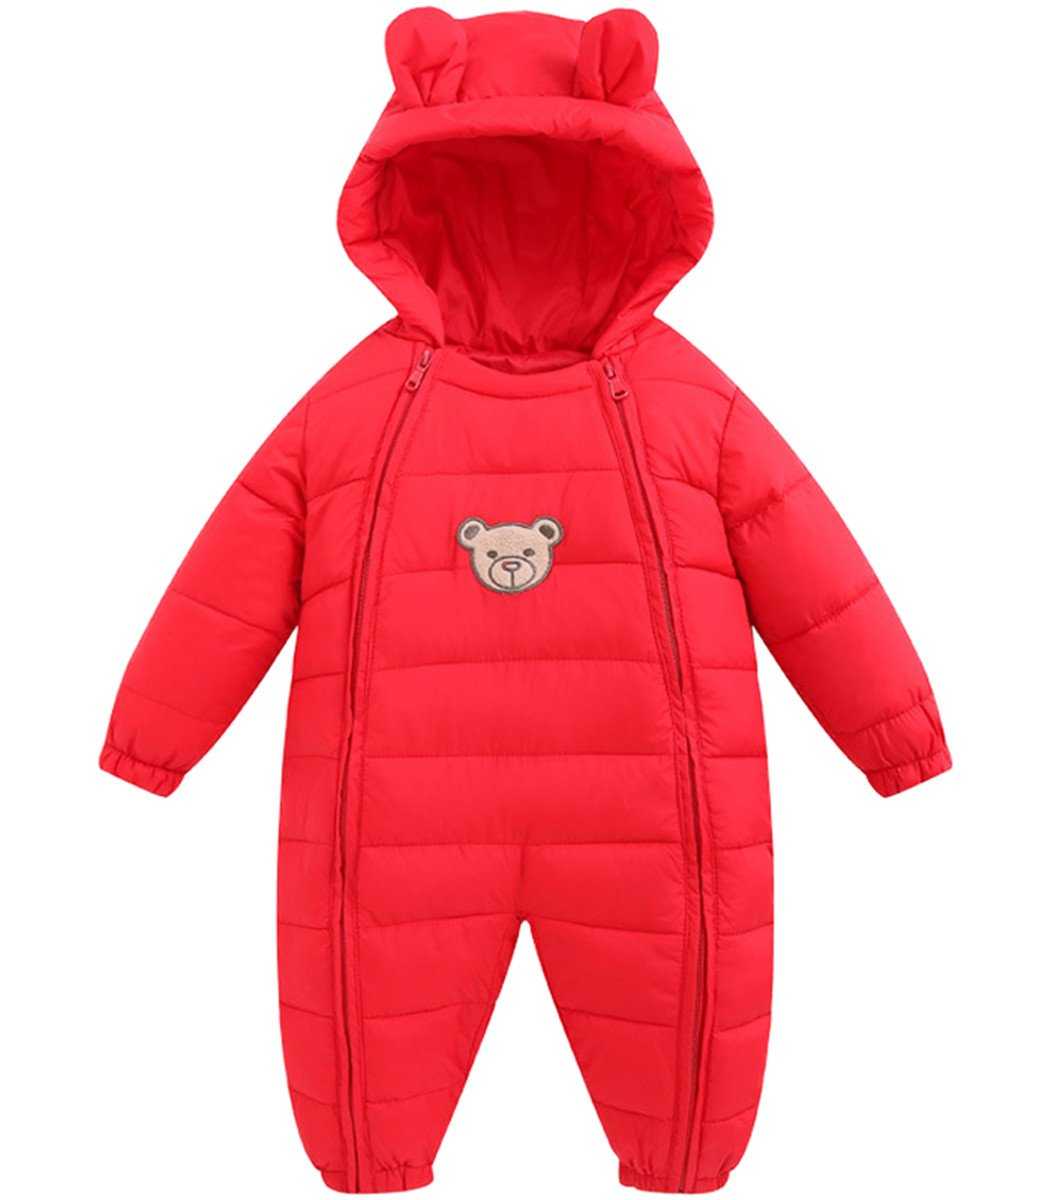 JELEUON Baby Girls Boys One Piece Two Zippers Bear Winter Down Jacket Romper Jumpsuit